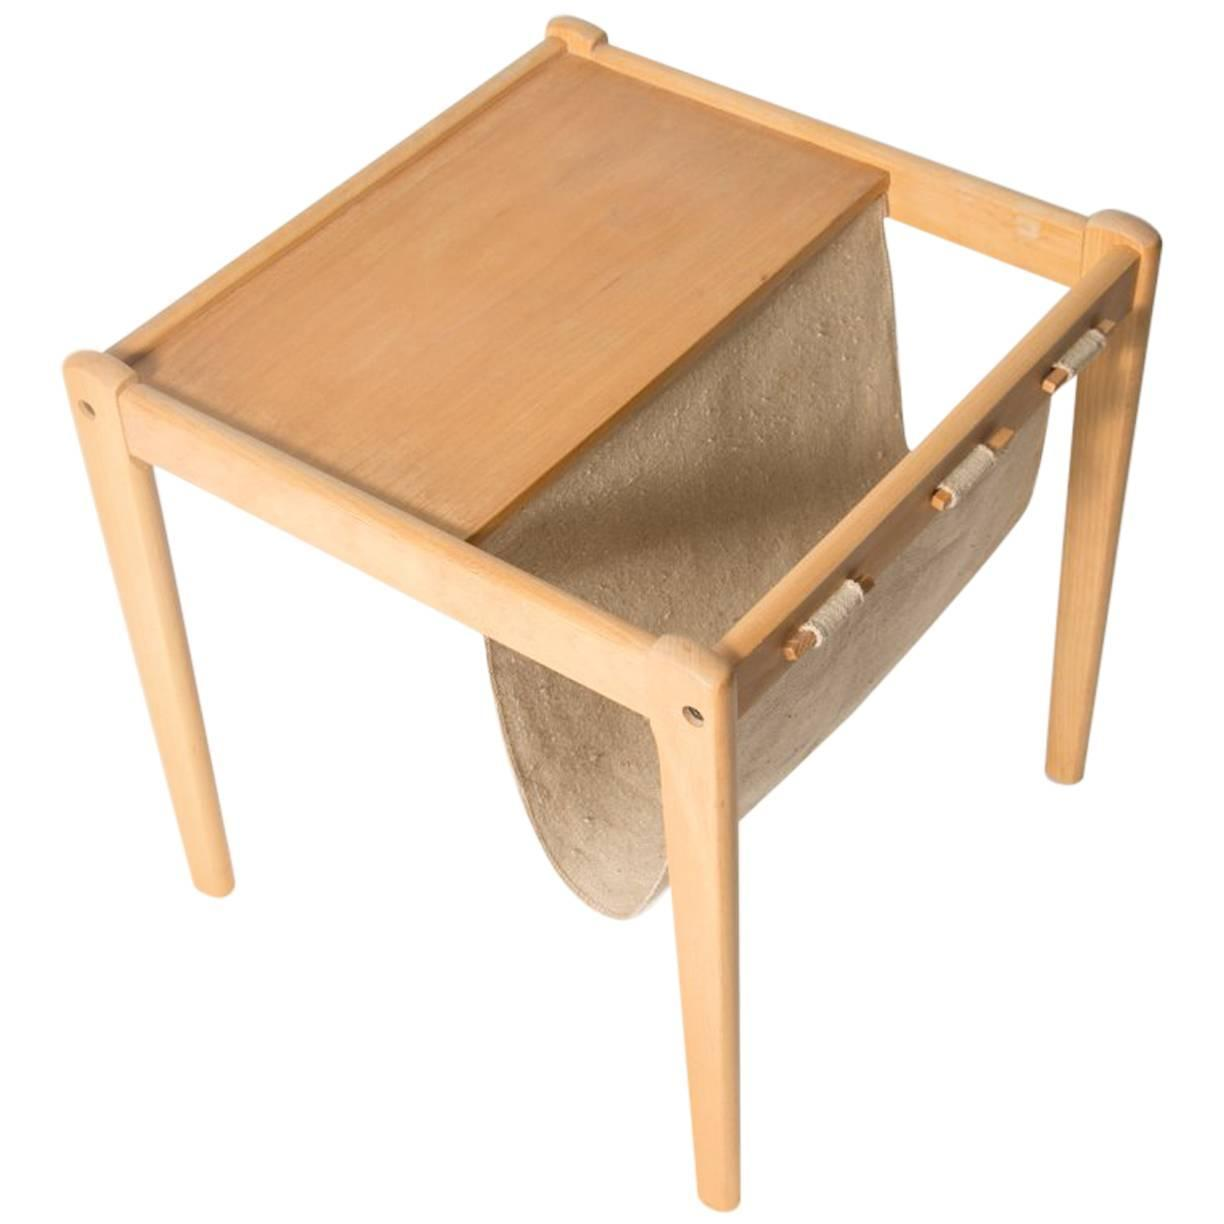 Wonderful image of Beechwood Danish Magazine Rack Side Table by Furbo For Sale at 1stdibs with #AF681C color and 1224x1224 pixels